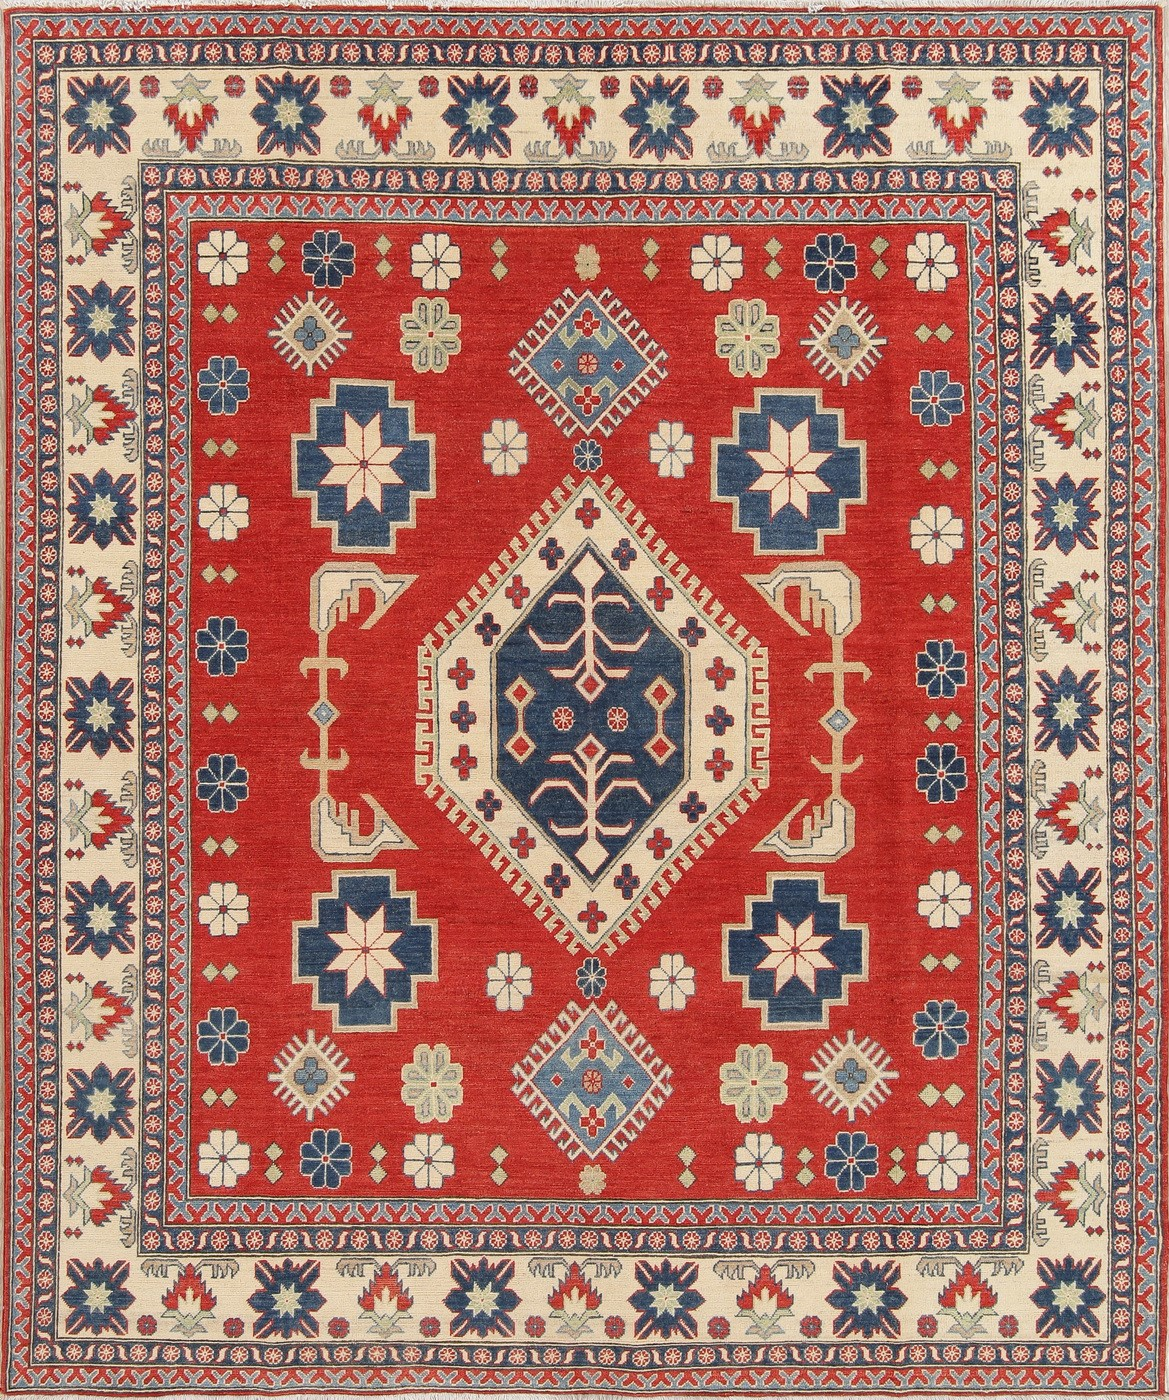 8x10 Red Blue Ivory Wool Pakistan Kazak Hand Knotted